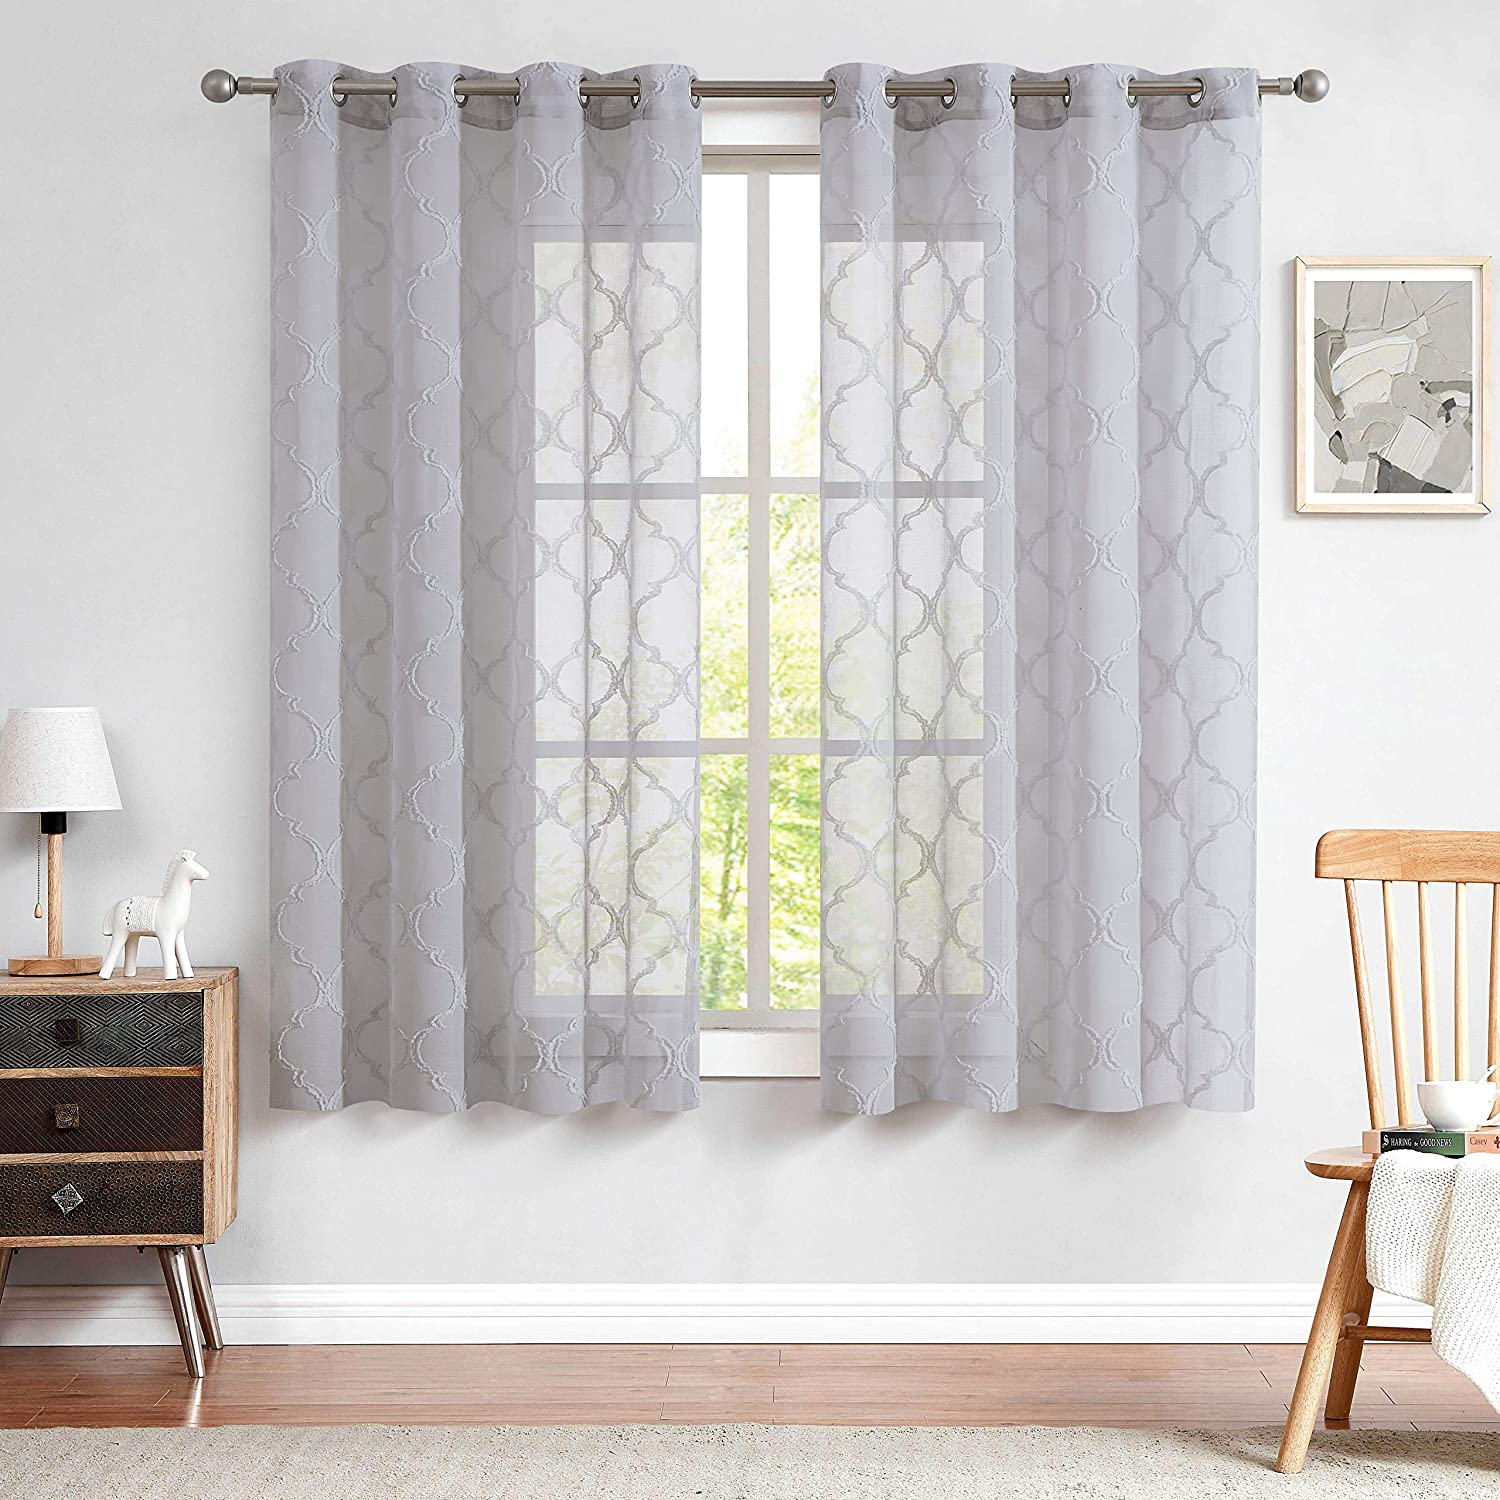 Romantex Grey Sheer Curtains 63 inches Long with Texture Moroccan Trellis Pattern Window Voile Sheers Design Textured for Bedroom/Living Room Grey,52